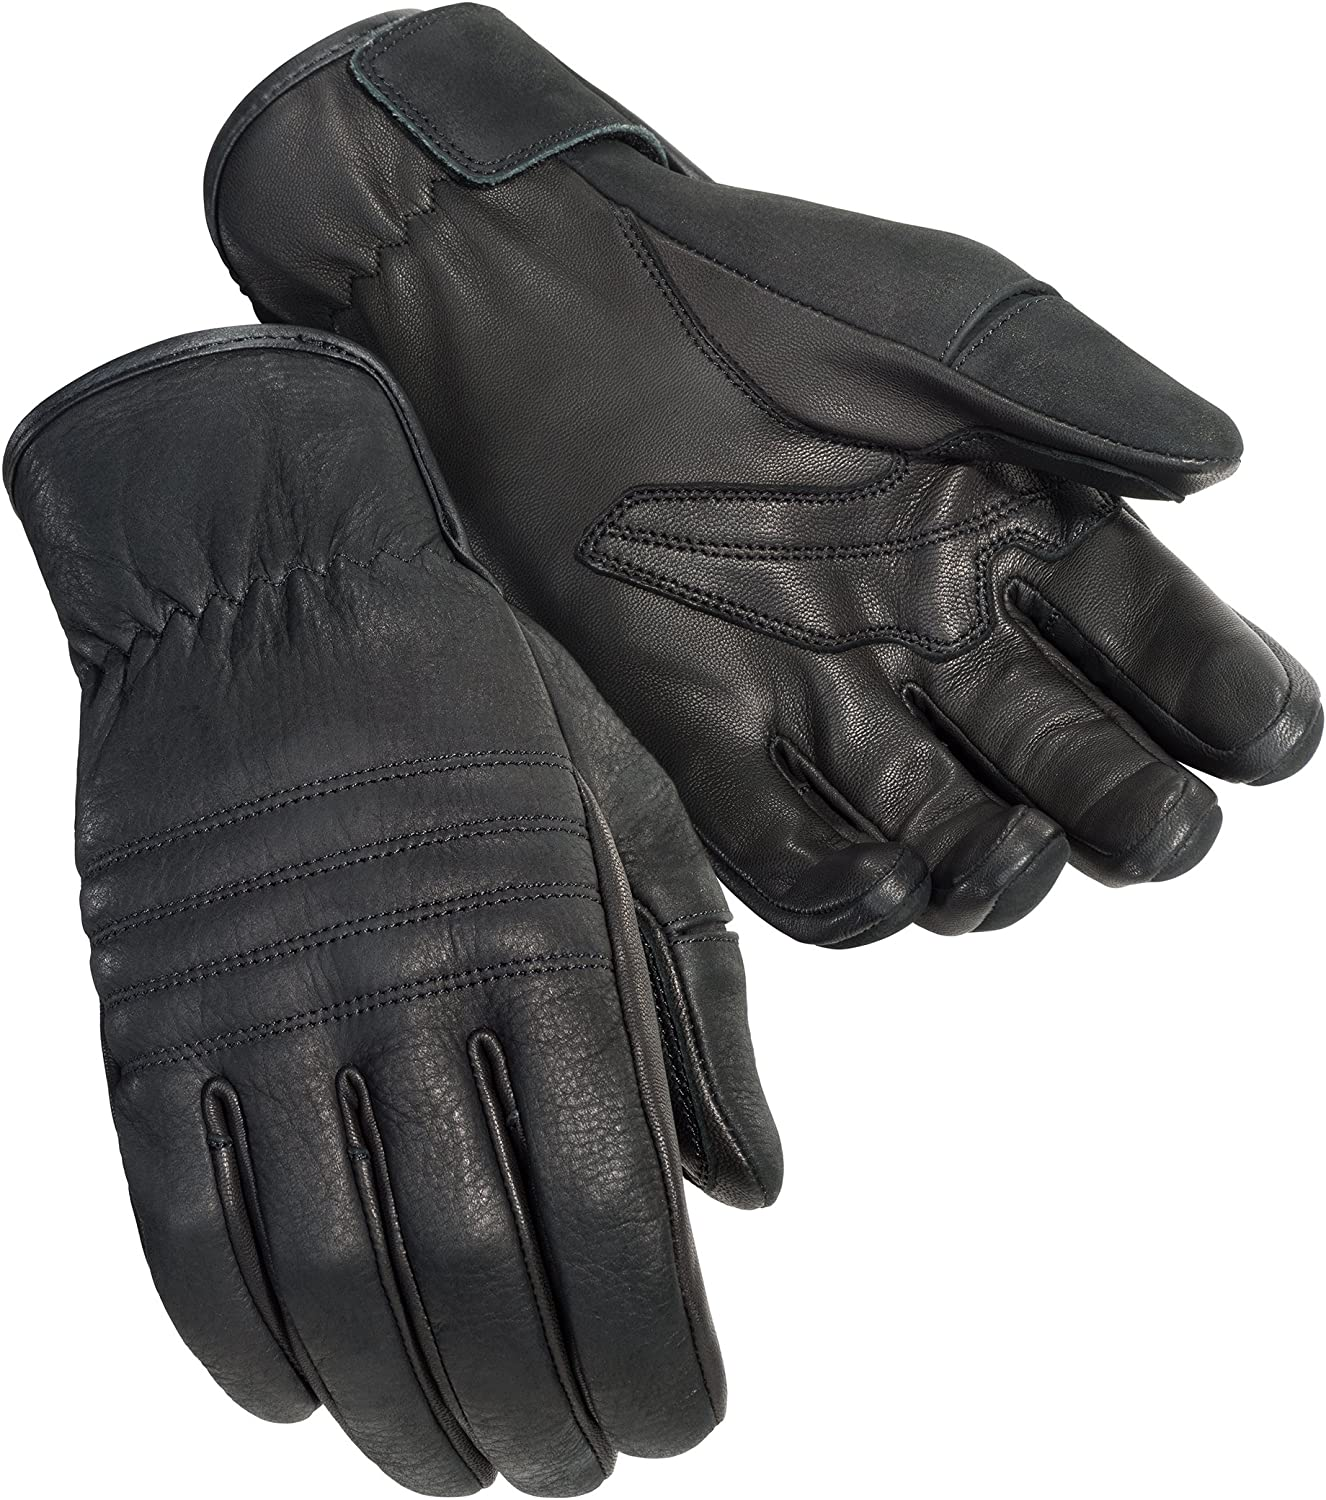 TourMaster Mens Nomad Cruiser Motorcycle Gloves Black, Small